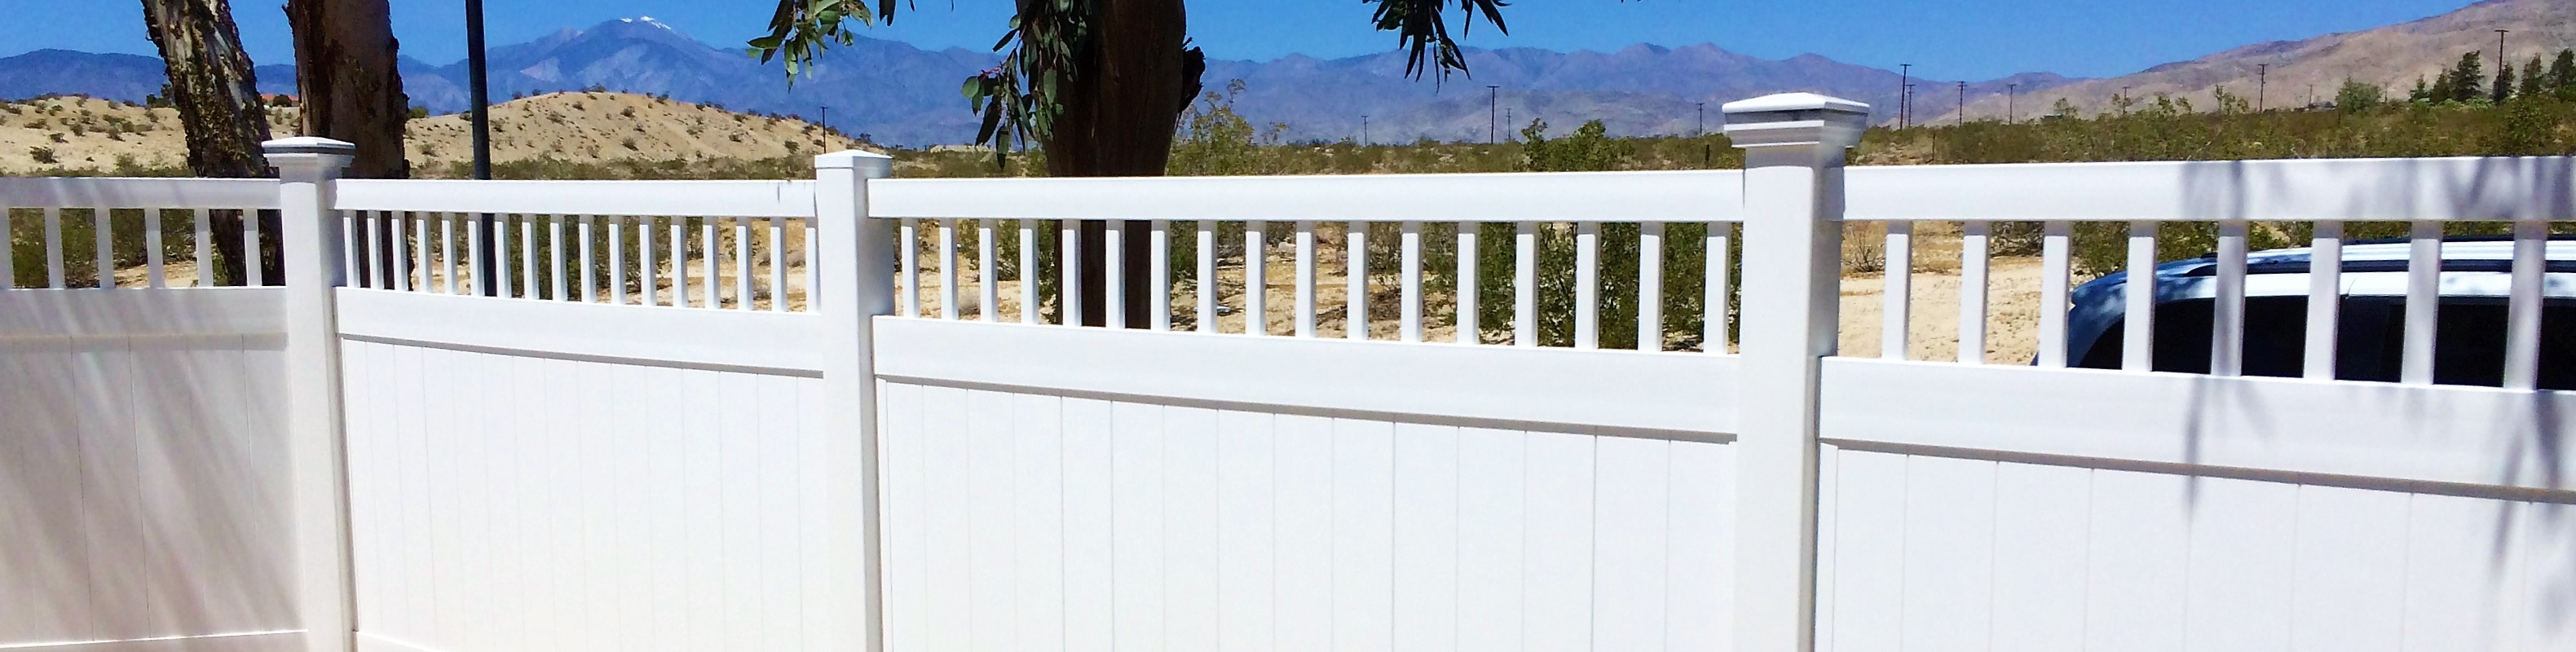 texas vinyl privacy fence fencing from vinyl fence wholesaler